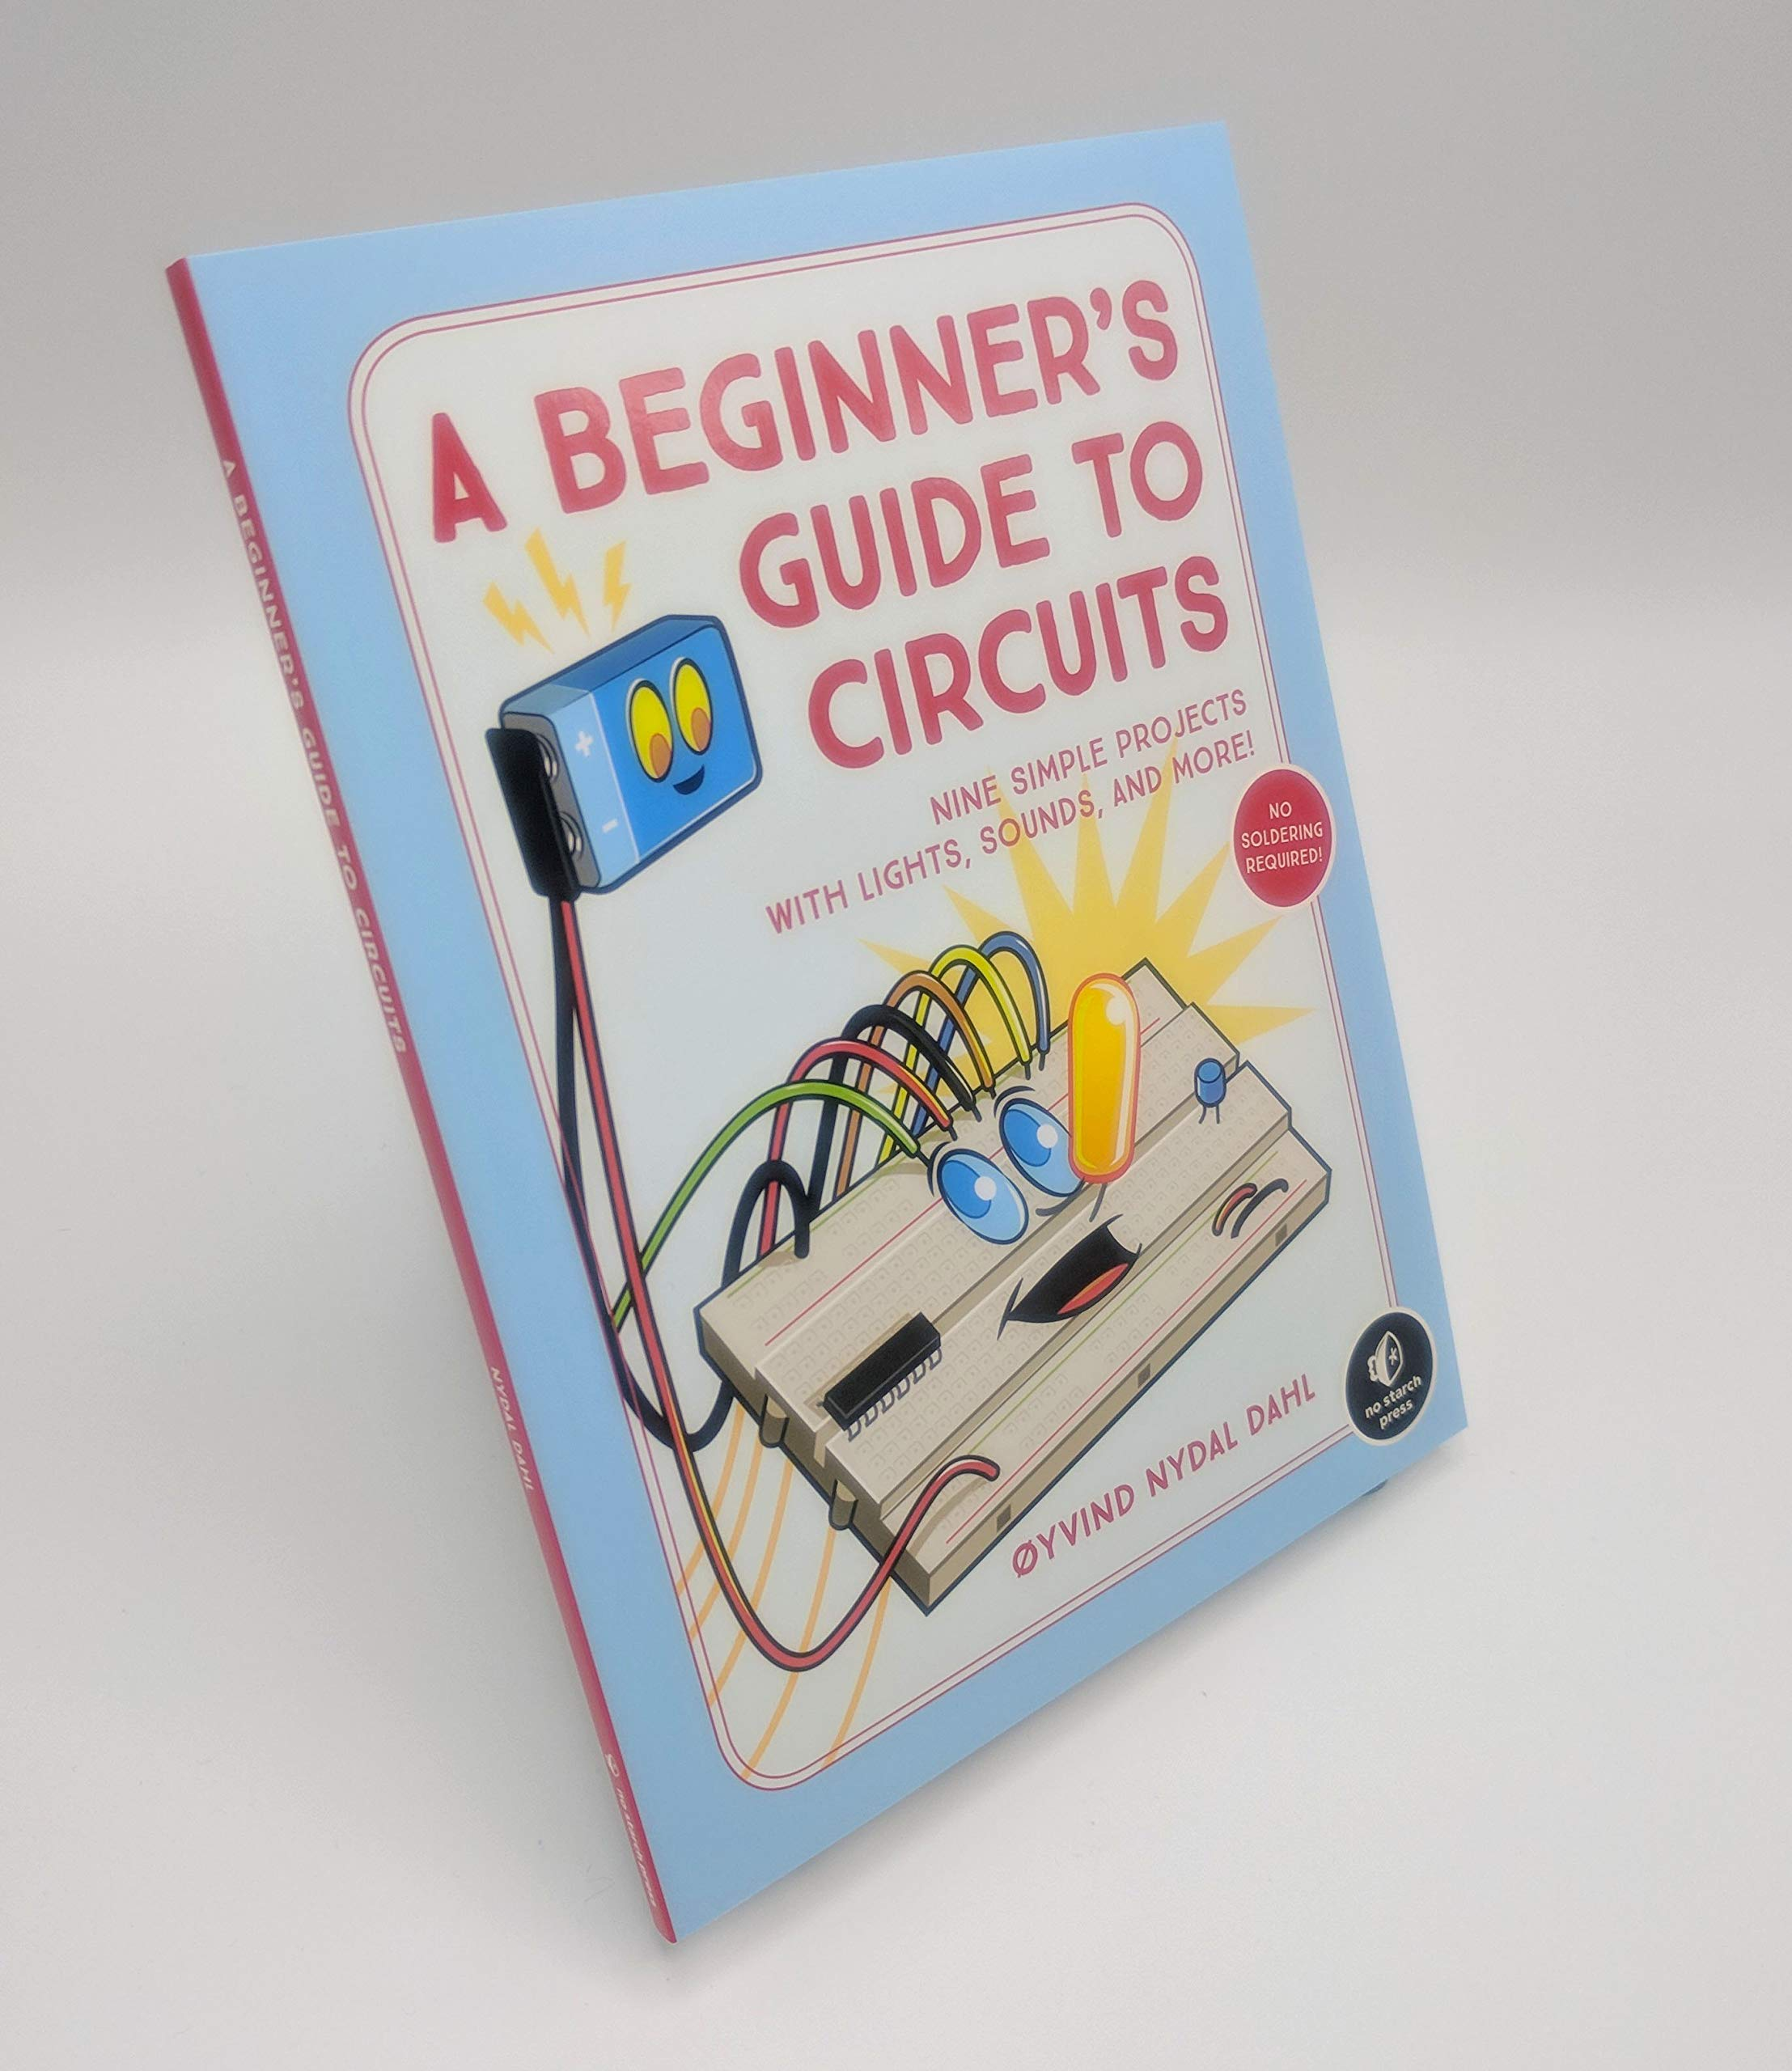 A Beginners Guide To Circuits Nine Simple Projects With Lights Sound Effects Electronic Sounds And More Oyvind Nydal Dahl 9781593279042 Books